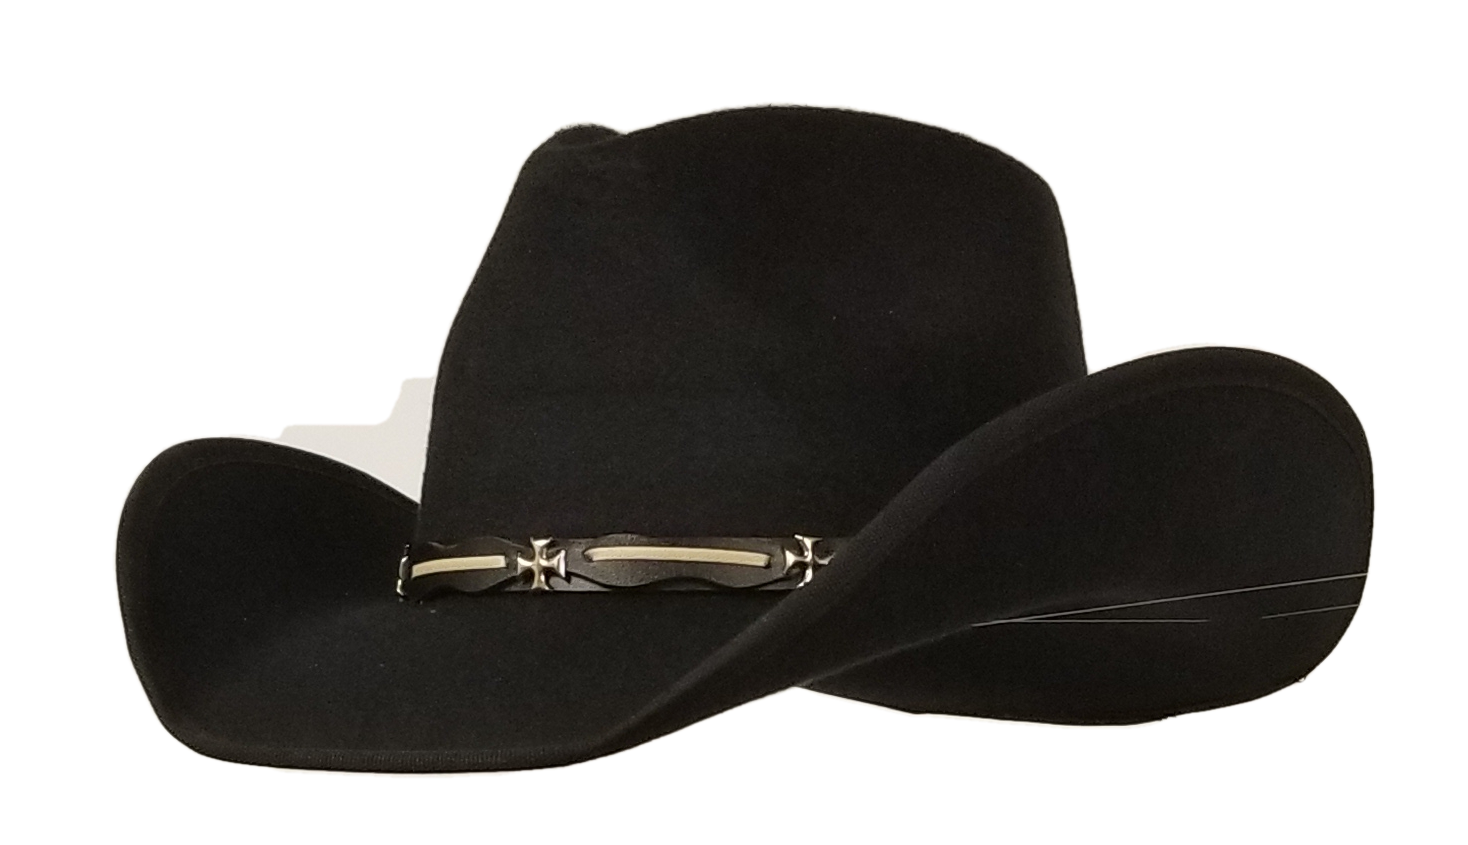 Trace Adkins style cowboy hat